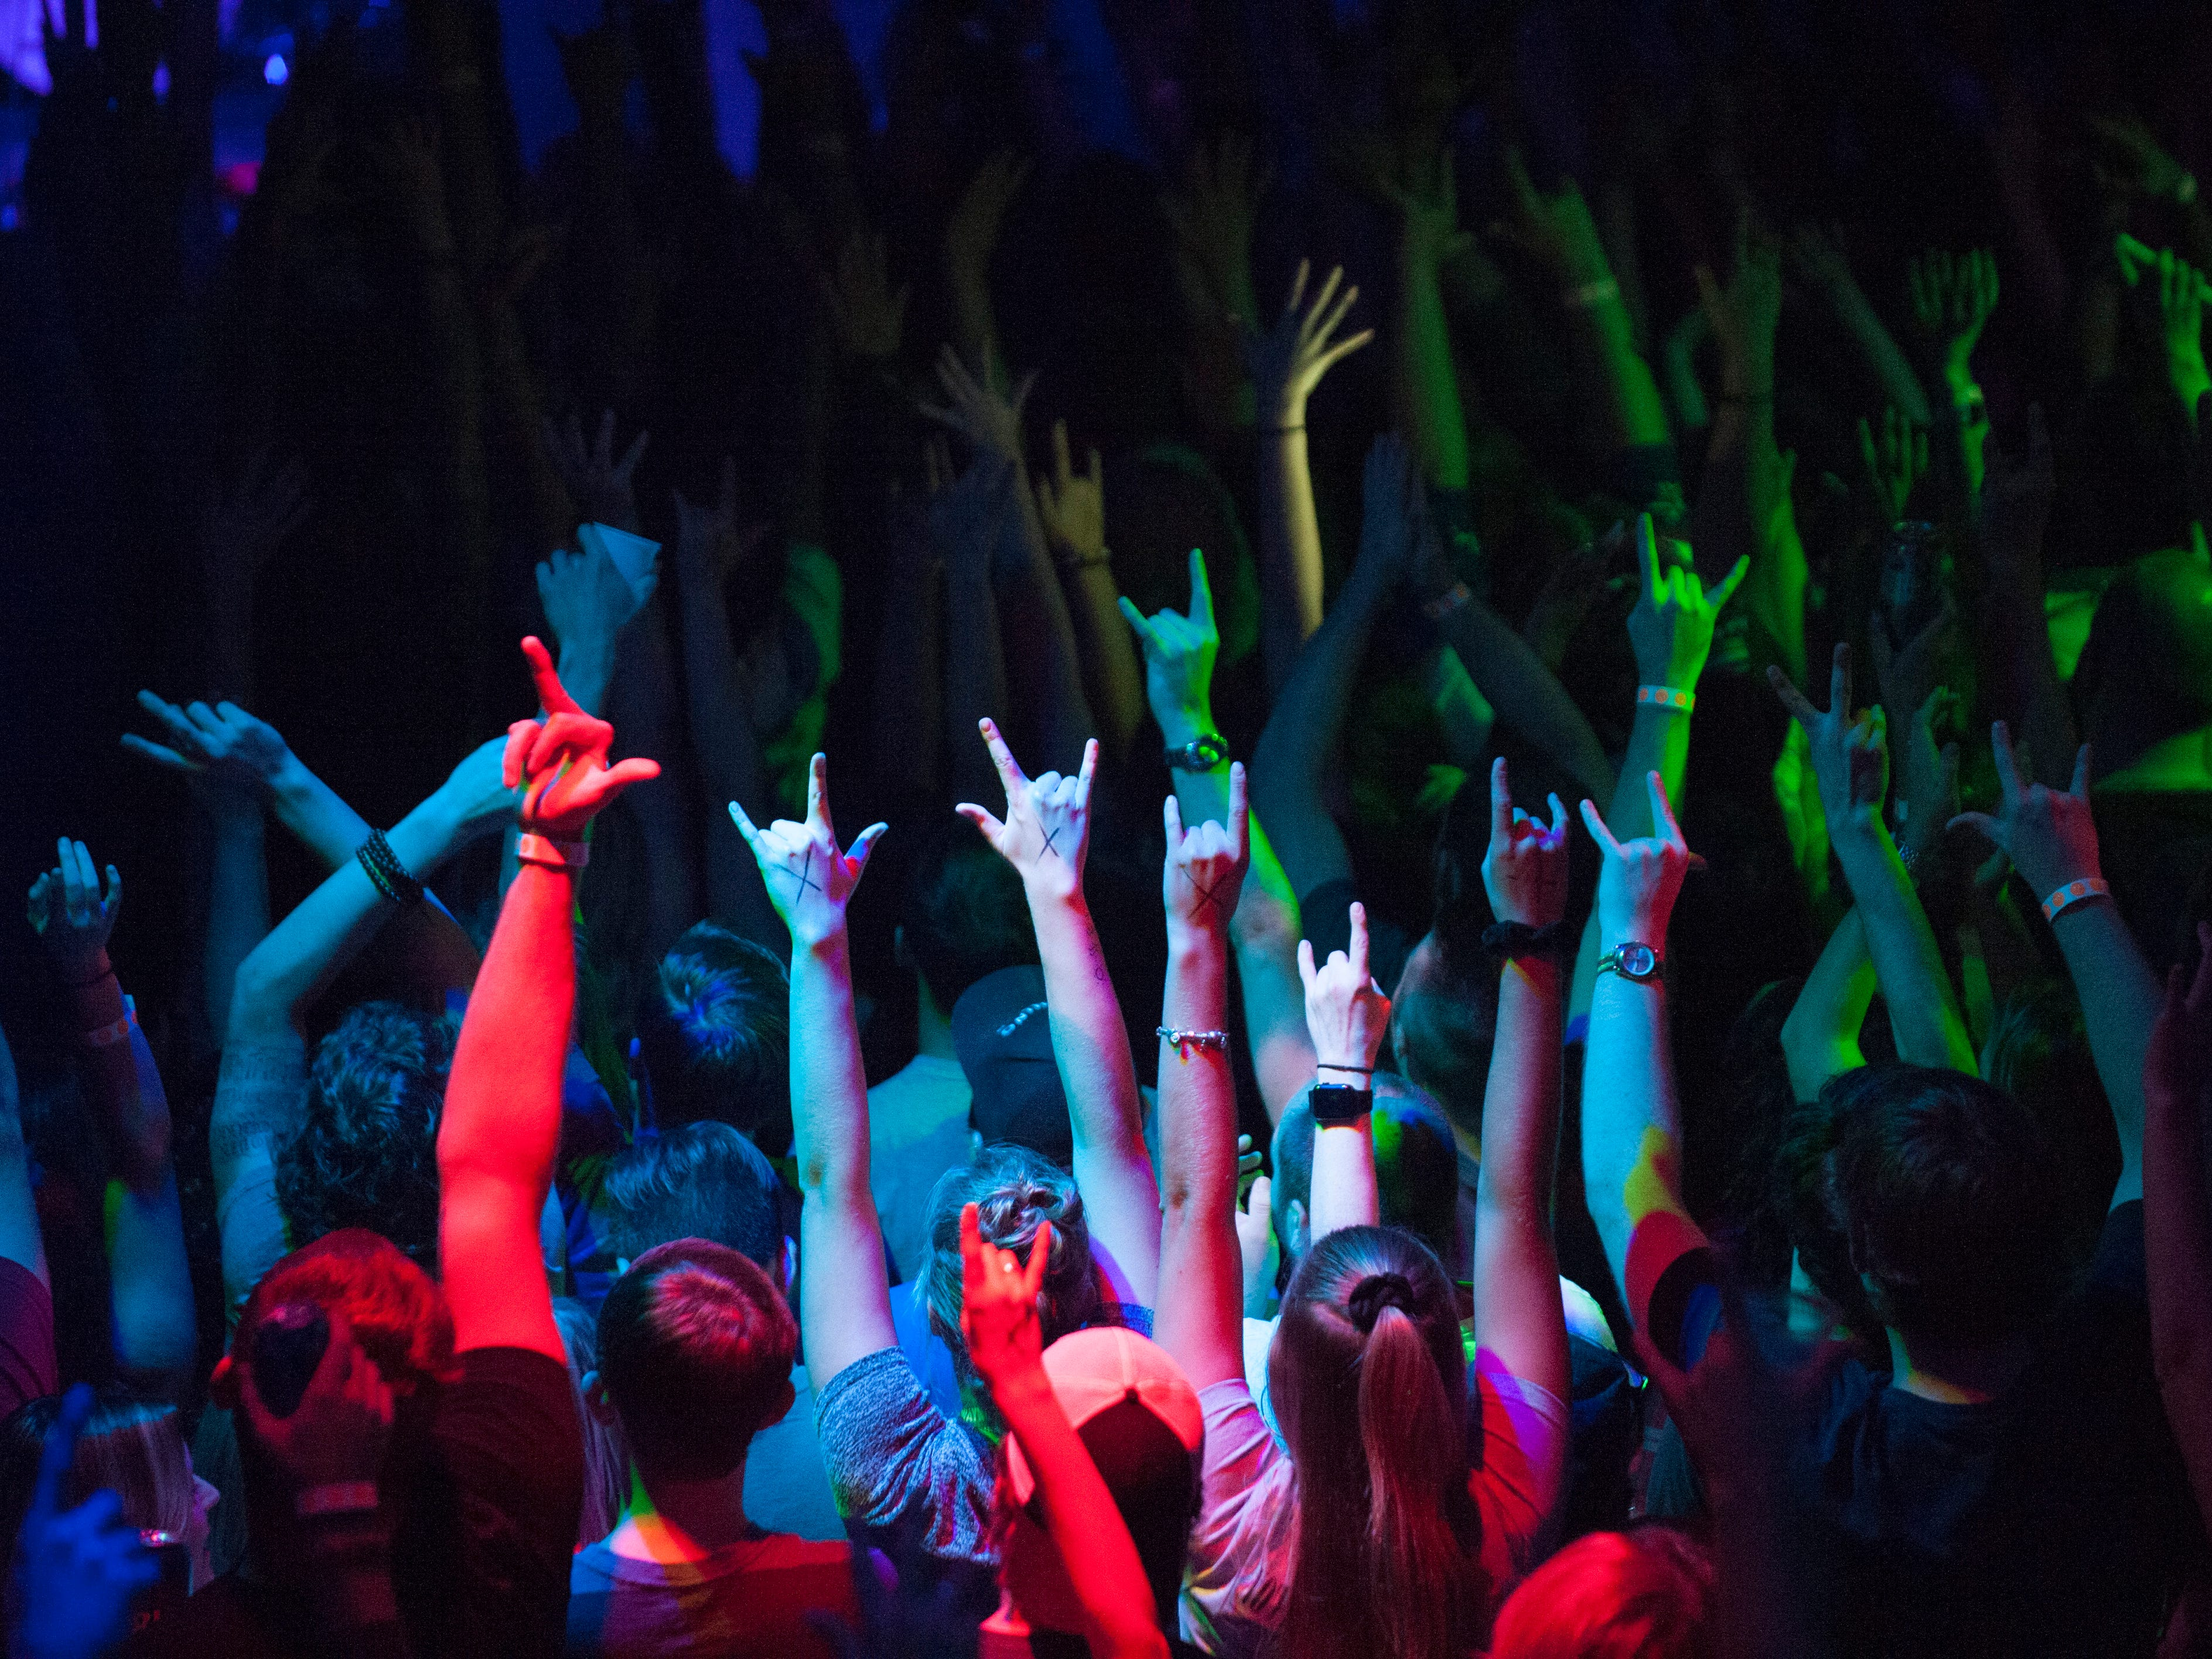 Fans throw their hands in the air at the conclusion of Grandson's performace at St. Andrews Hall in Detroit.